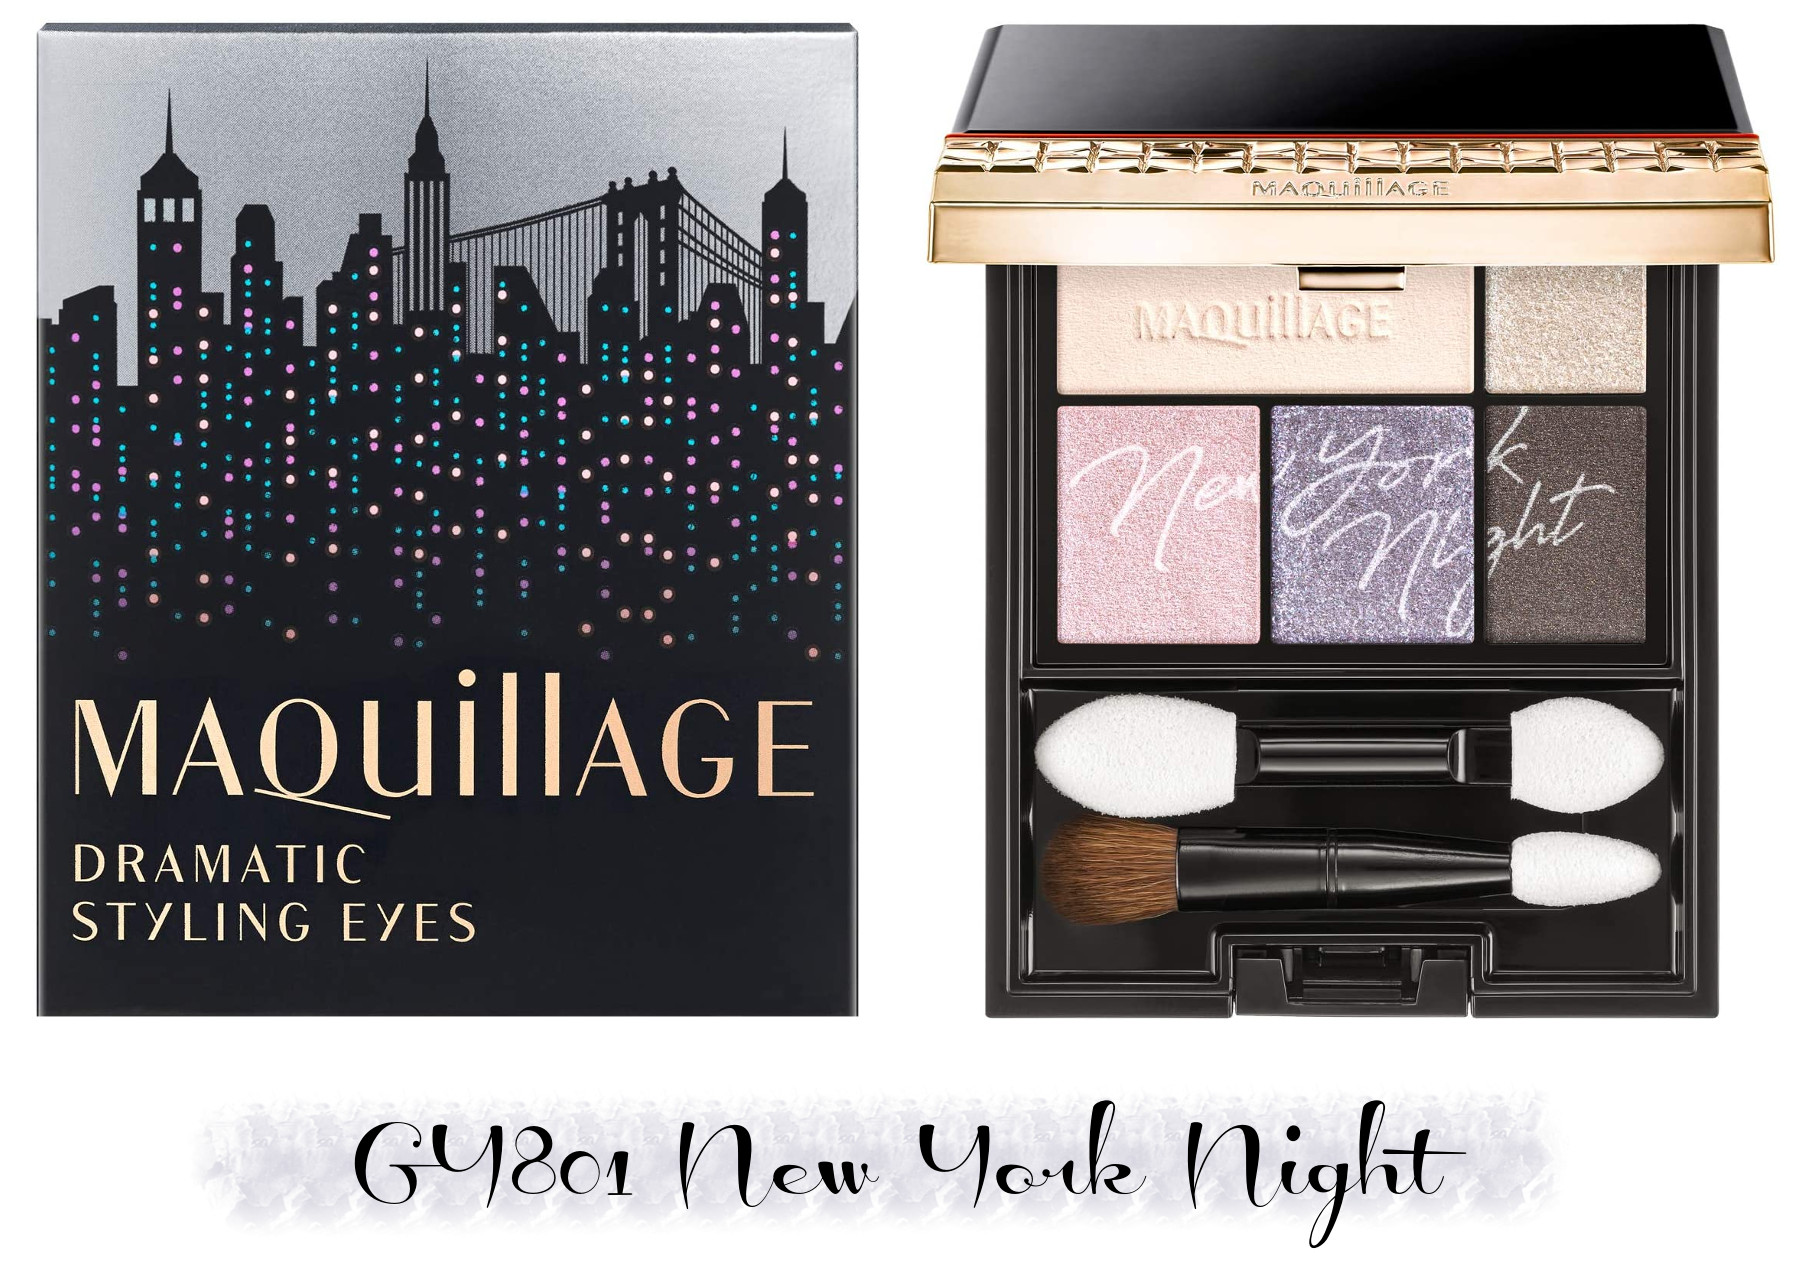 MAQuillAGE 2020 Holiday Collection Aurora Illumination Colors Dramatic Styling Eyes GY801 New York Night